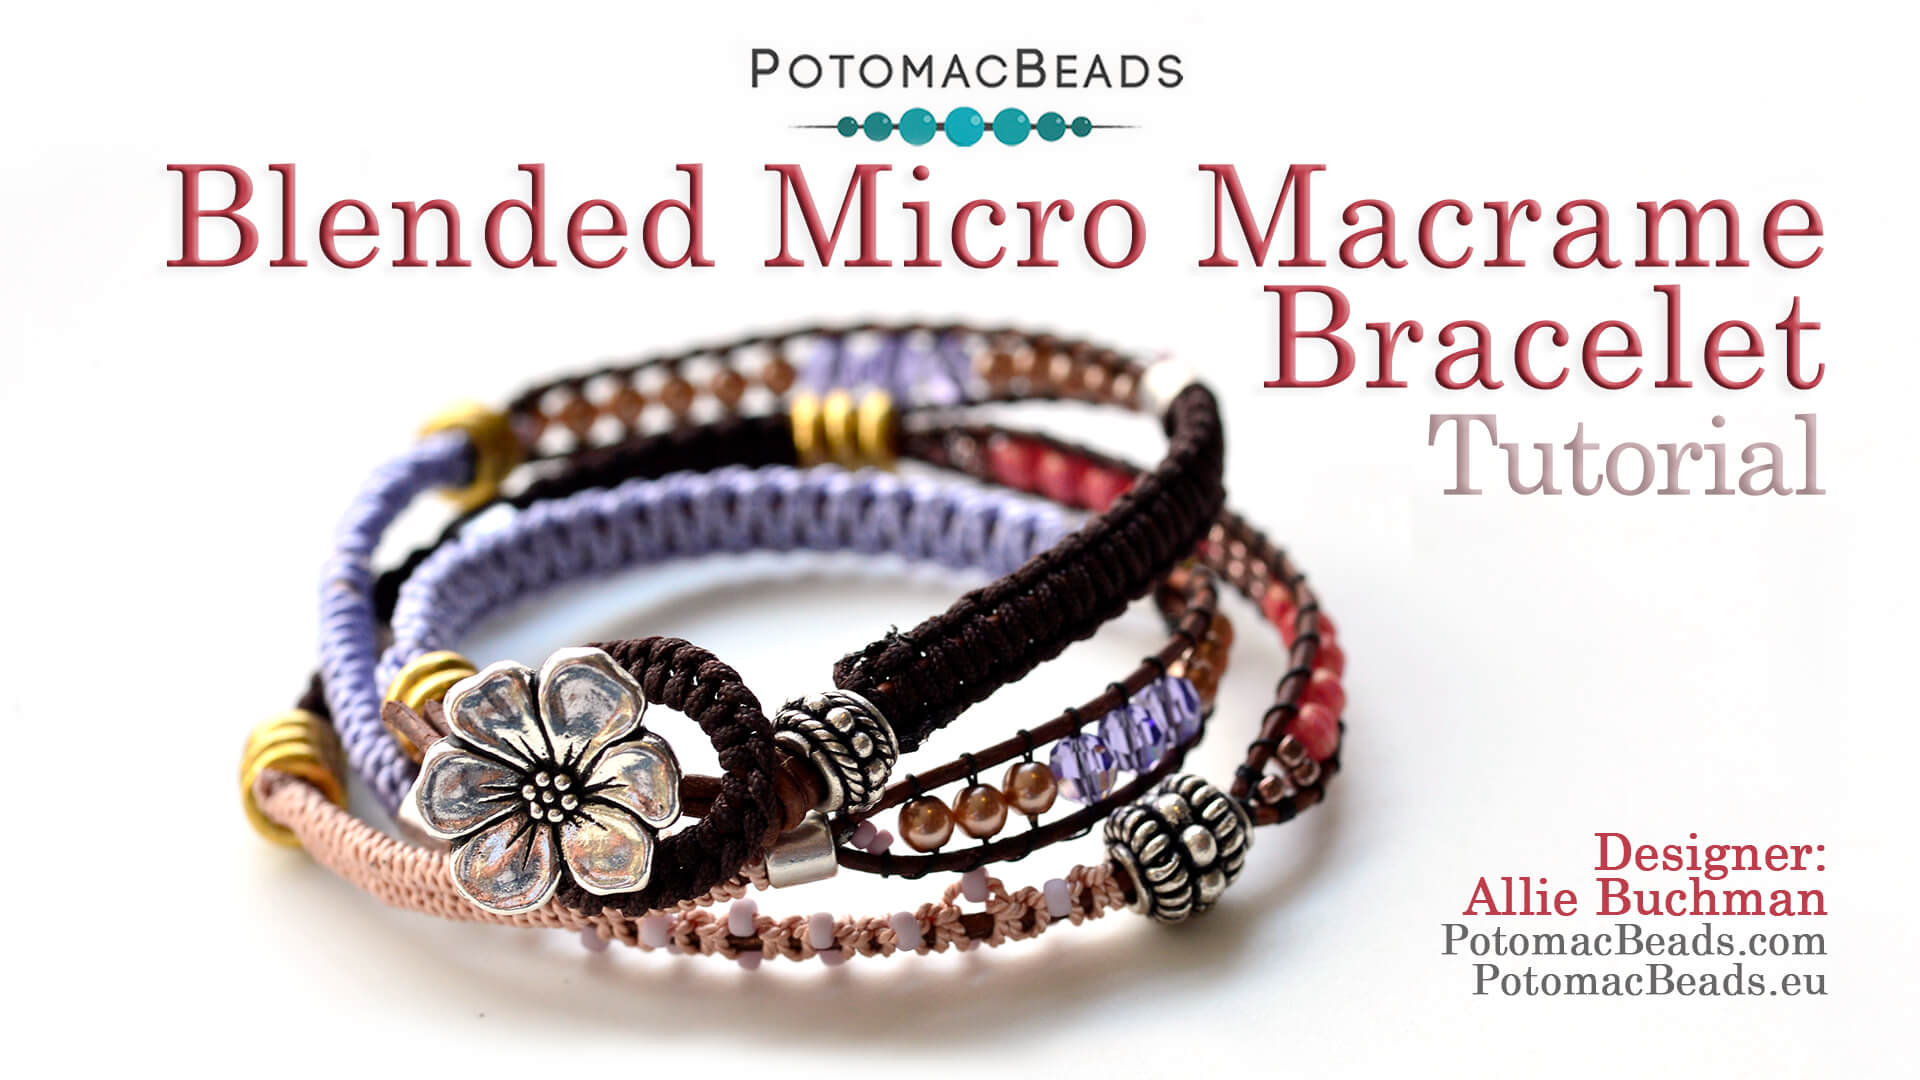 How to Bead Jewelry / Videos Sorted by Beads / Pearl Videos (Czech, Freshwater, Potomac Pearls) / Blended Micro Macrame Bracelet Tutorial